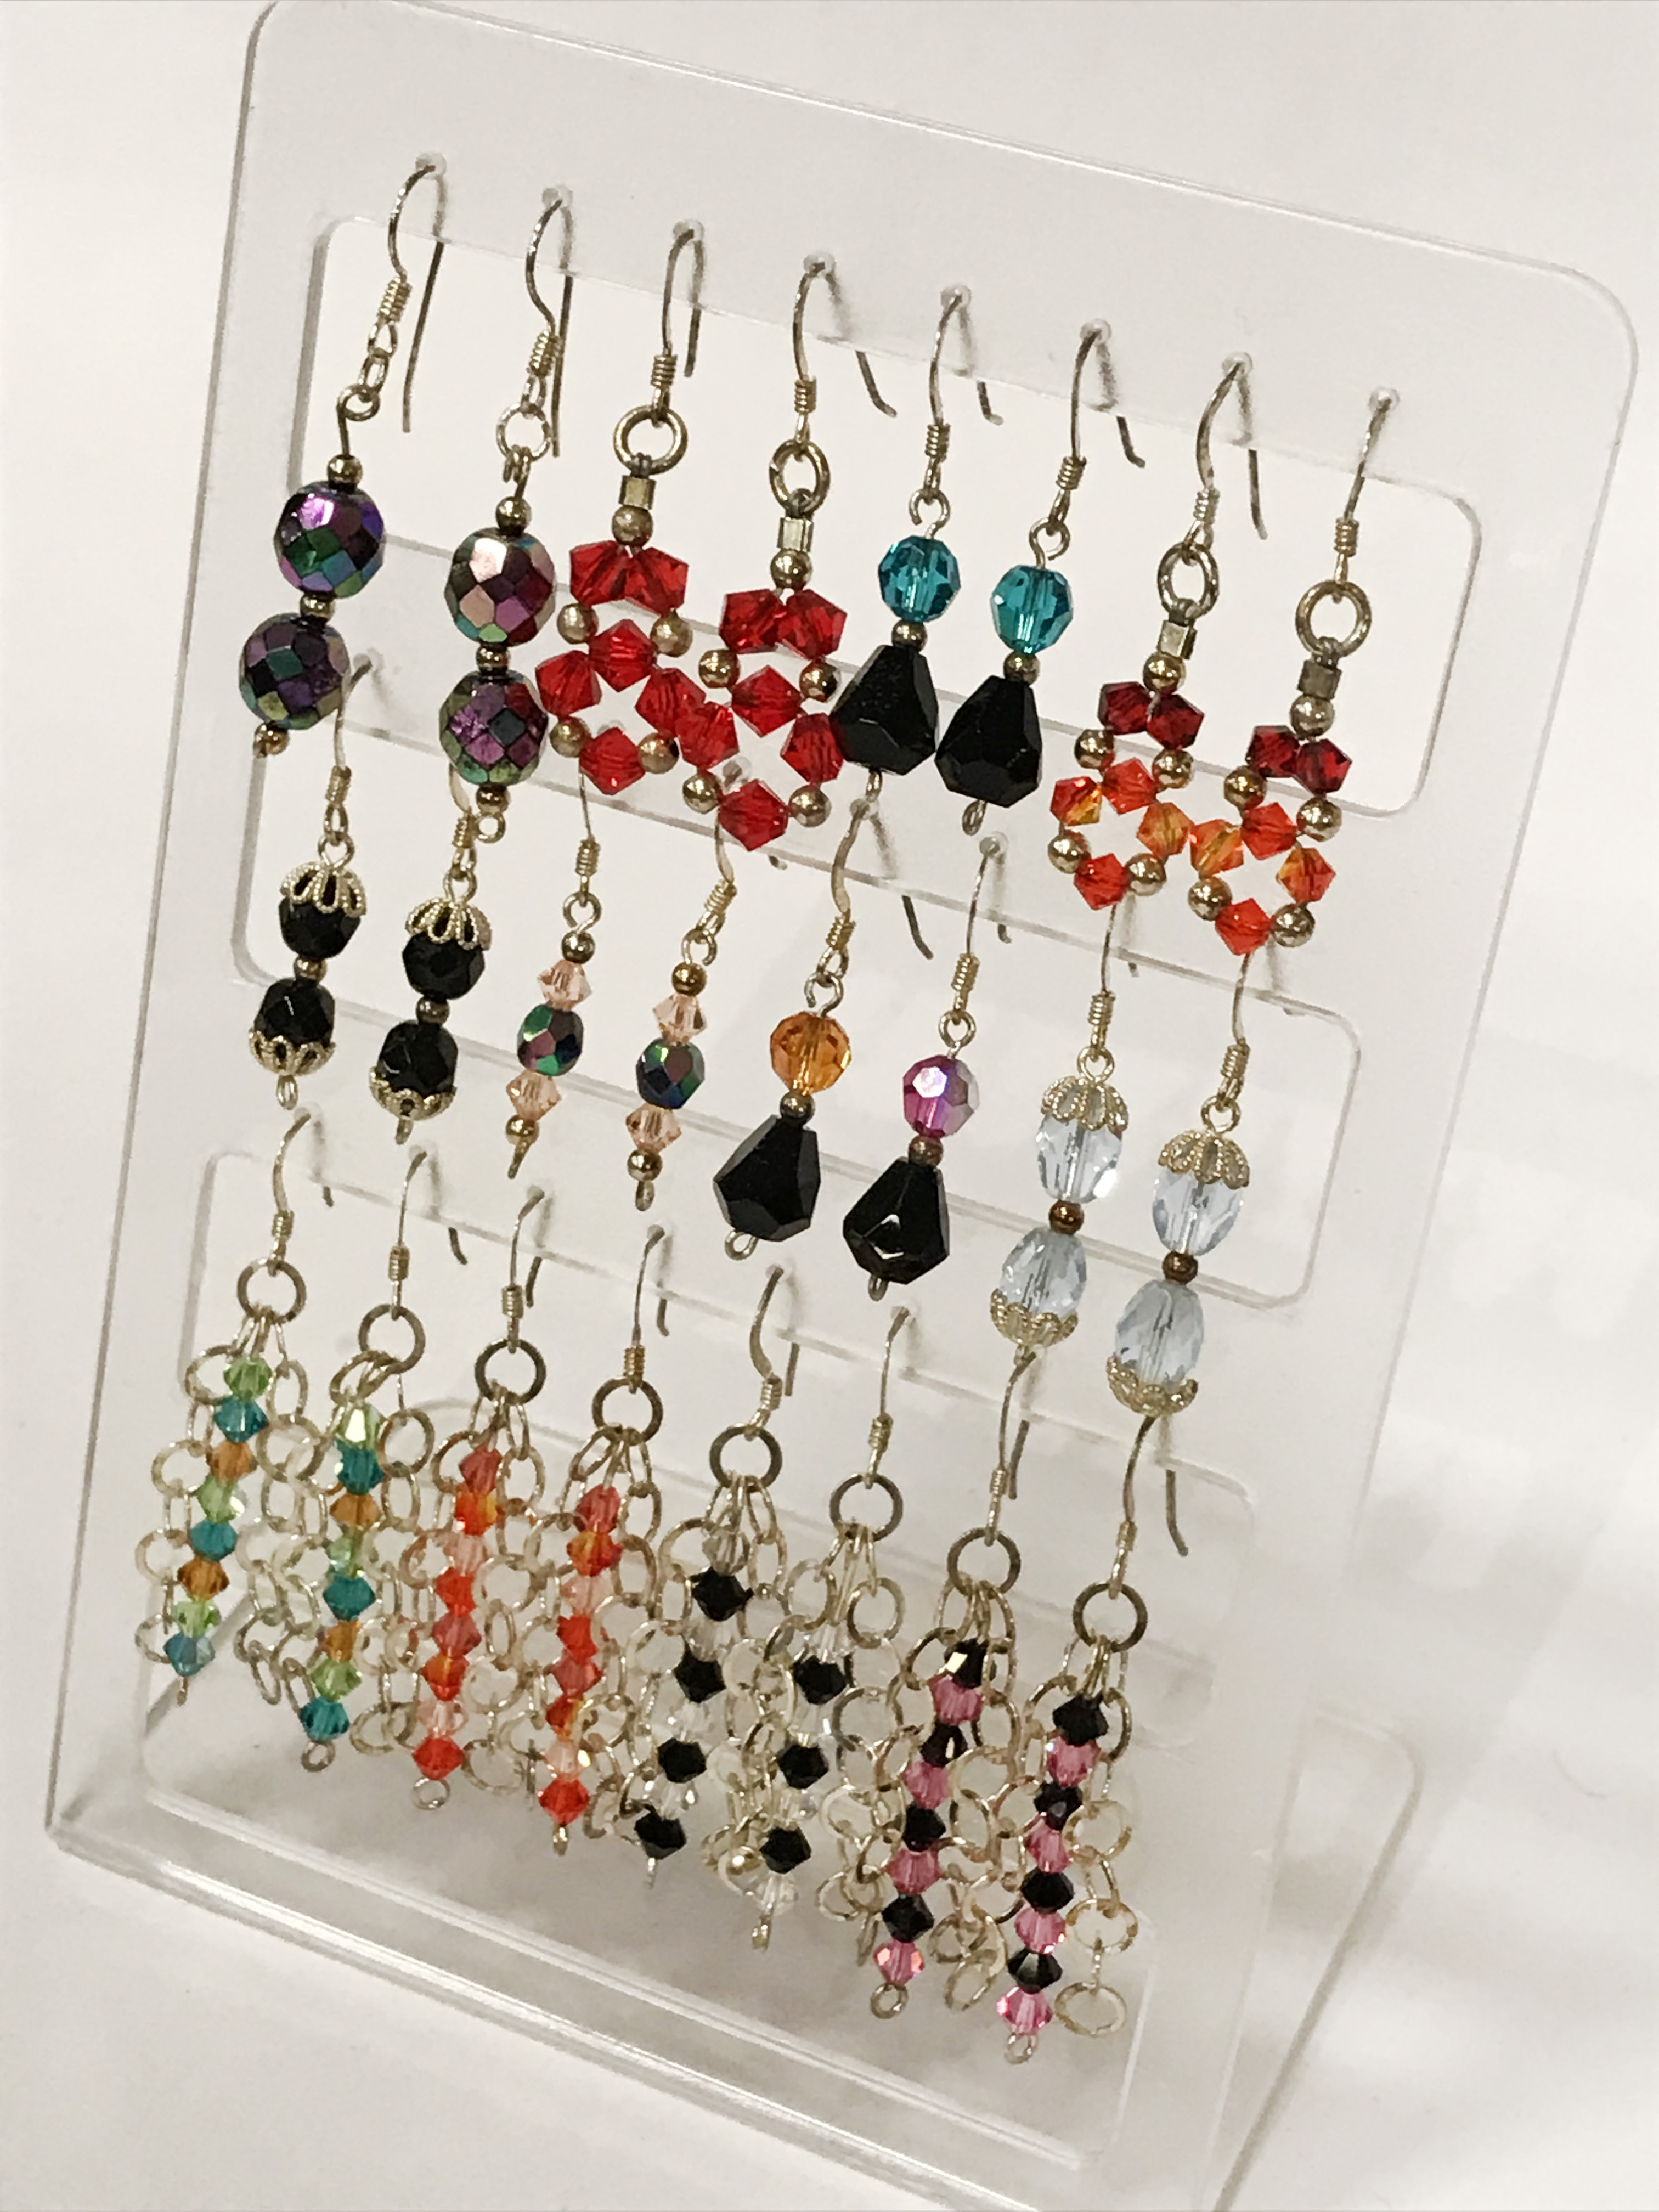 QTY OF SILVER EARRINGS - 26 PAIRS IN TOTAL - Image 3 of 3